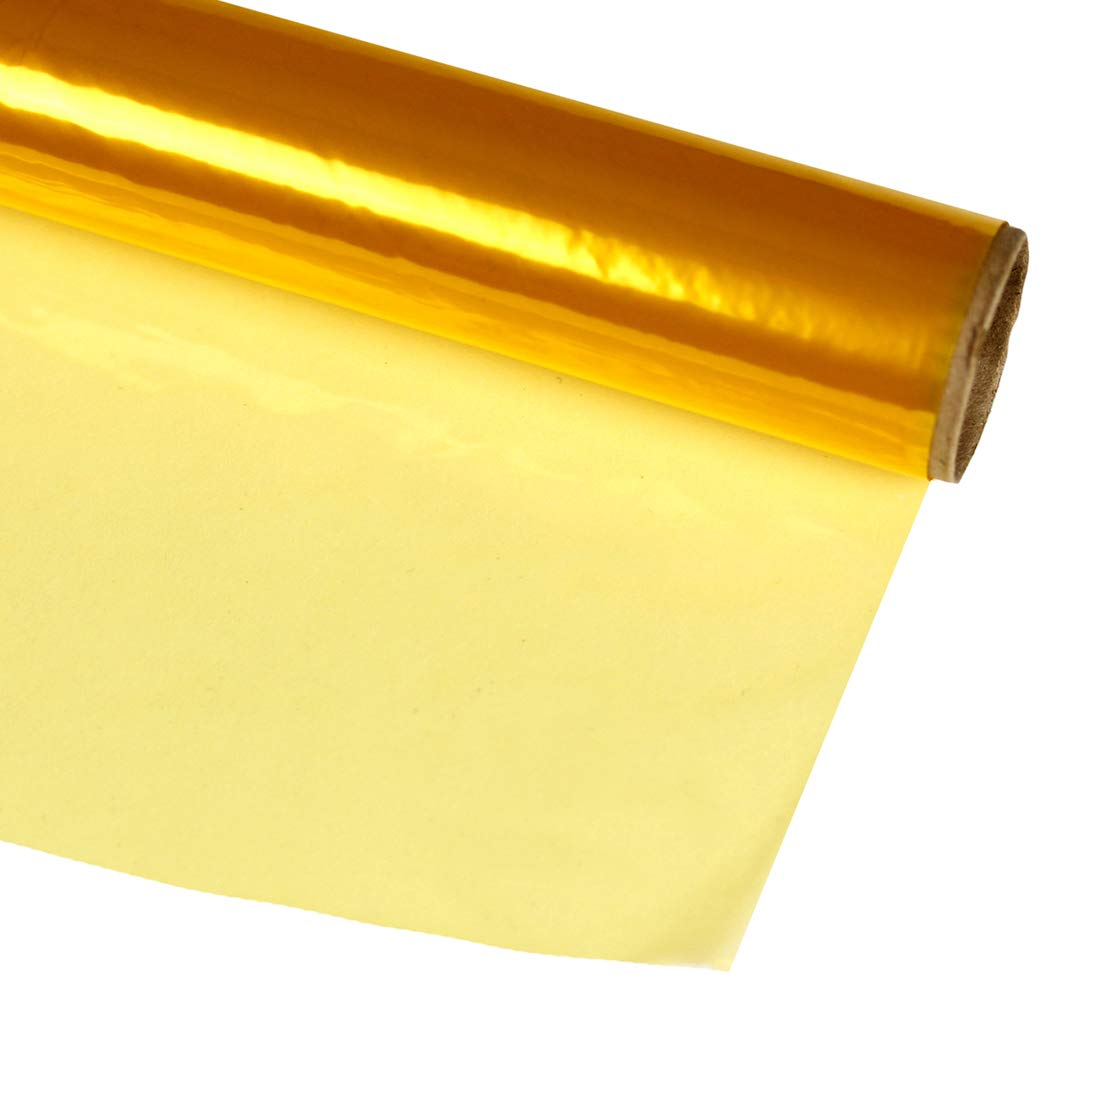 Products Cellophane Roll – Cellophane Wrap for Crafts, Gifts, and Baskets 20 Inch x 12.5 Feet, Yellow, BRIGHT, TRANSLUCENT COLORS – Variety of.., By Hygloss